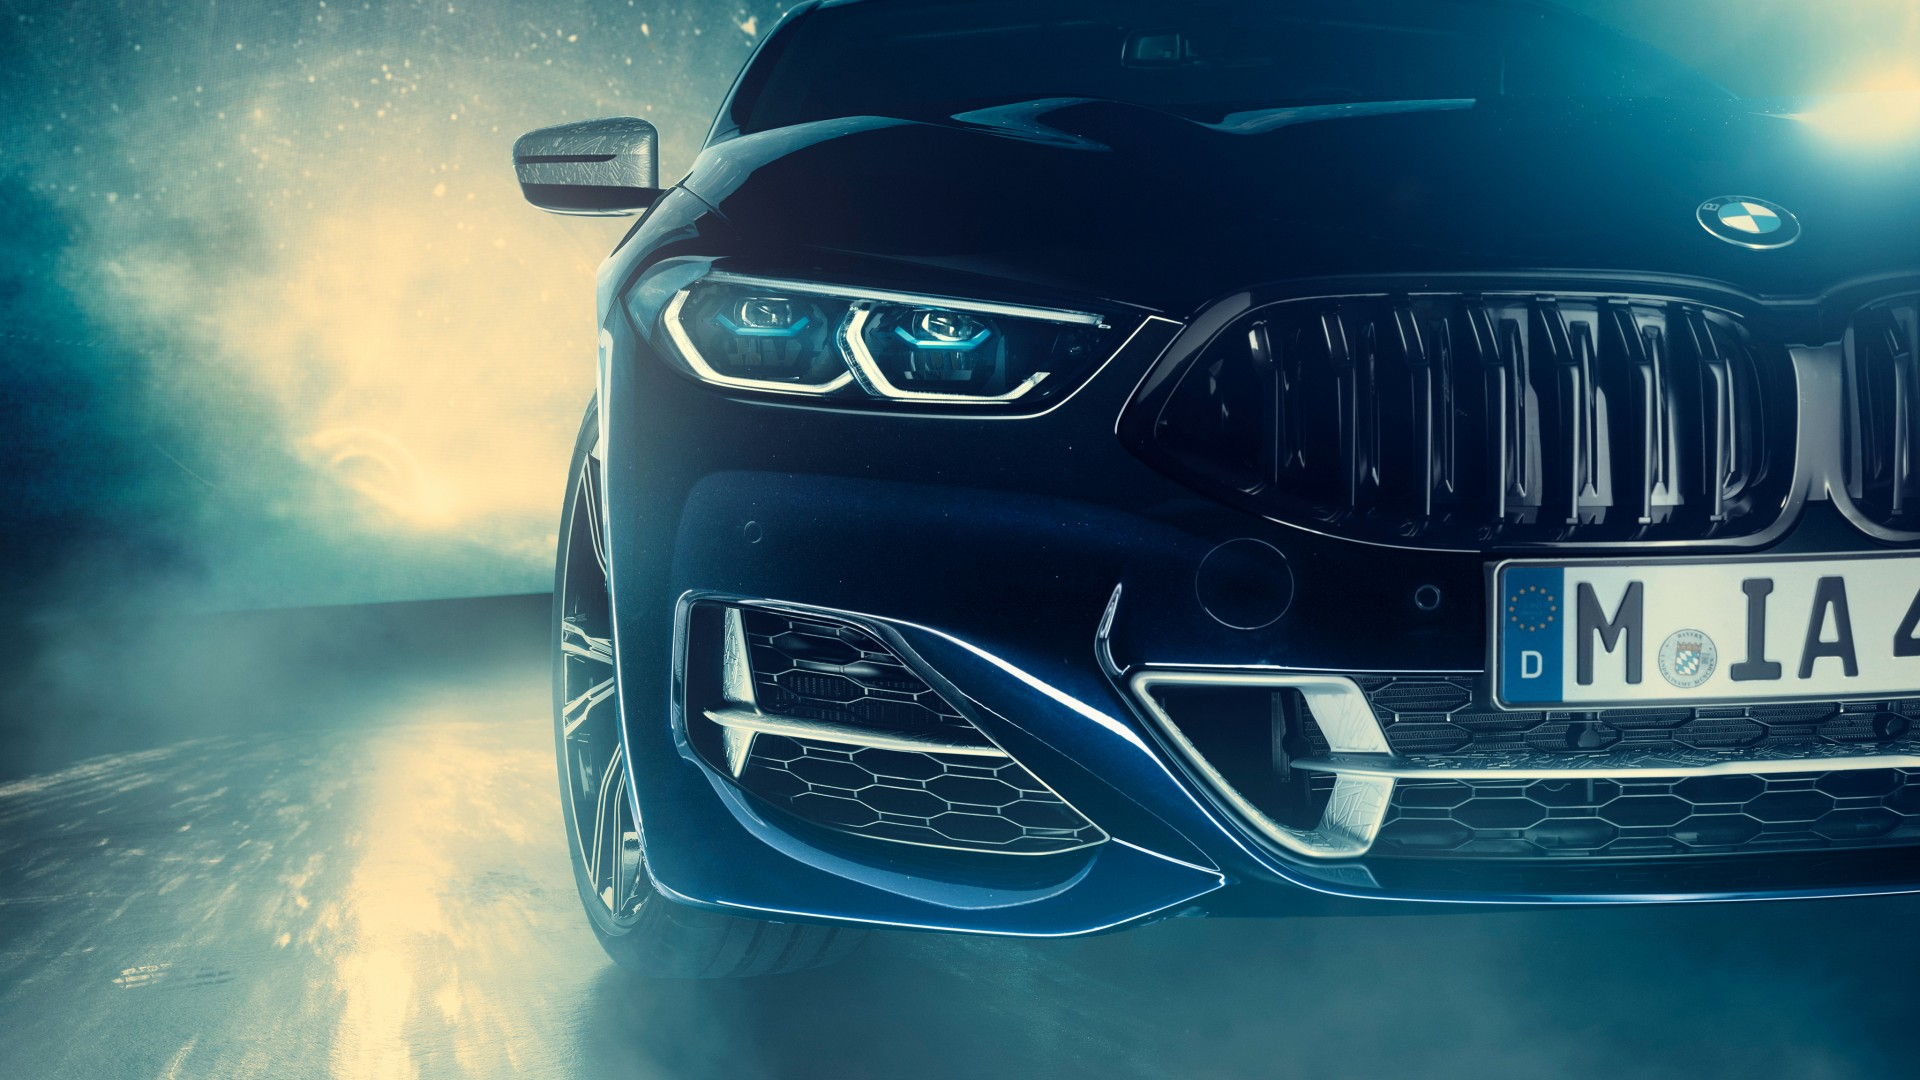 Bmw Individual M850i Xdrive Night Sky 2019 4k Wallpaper